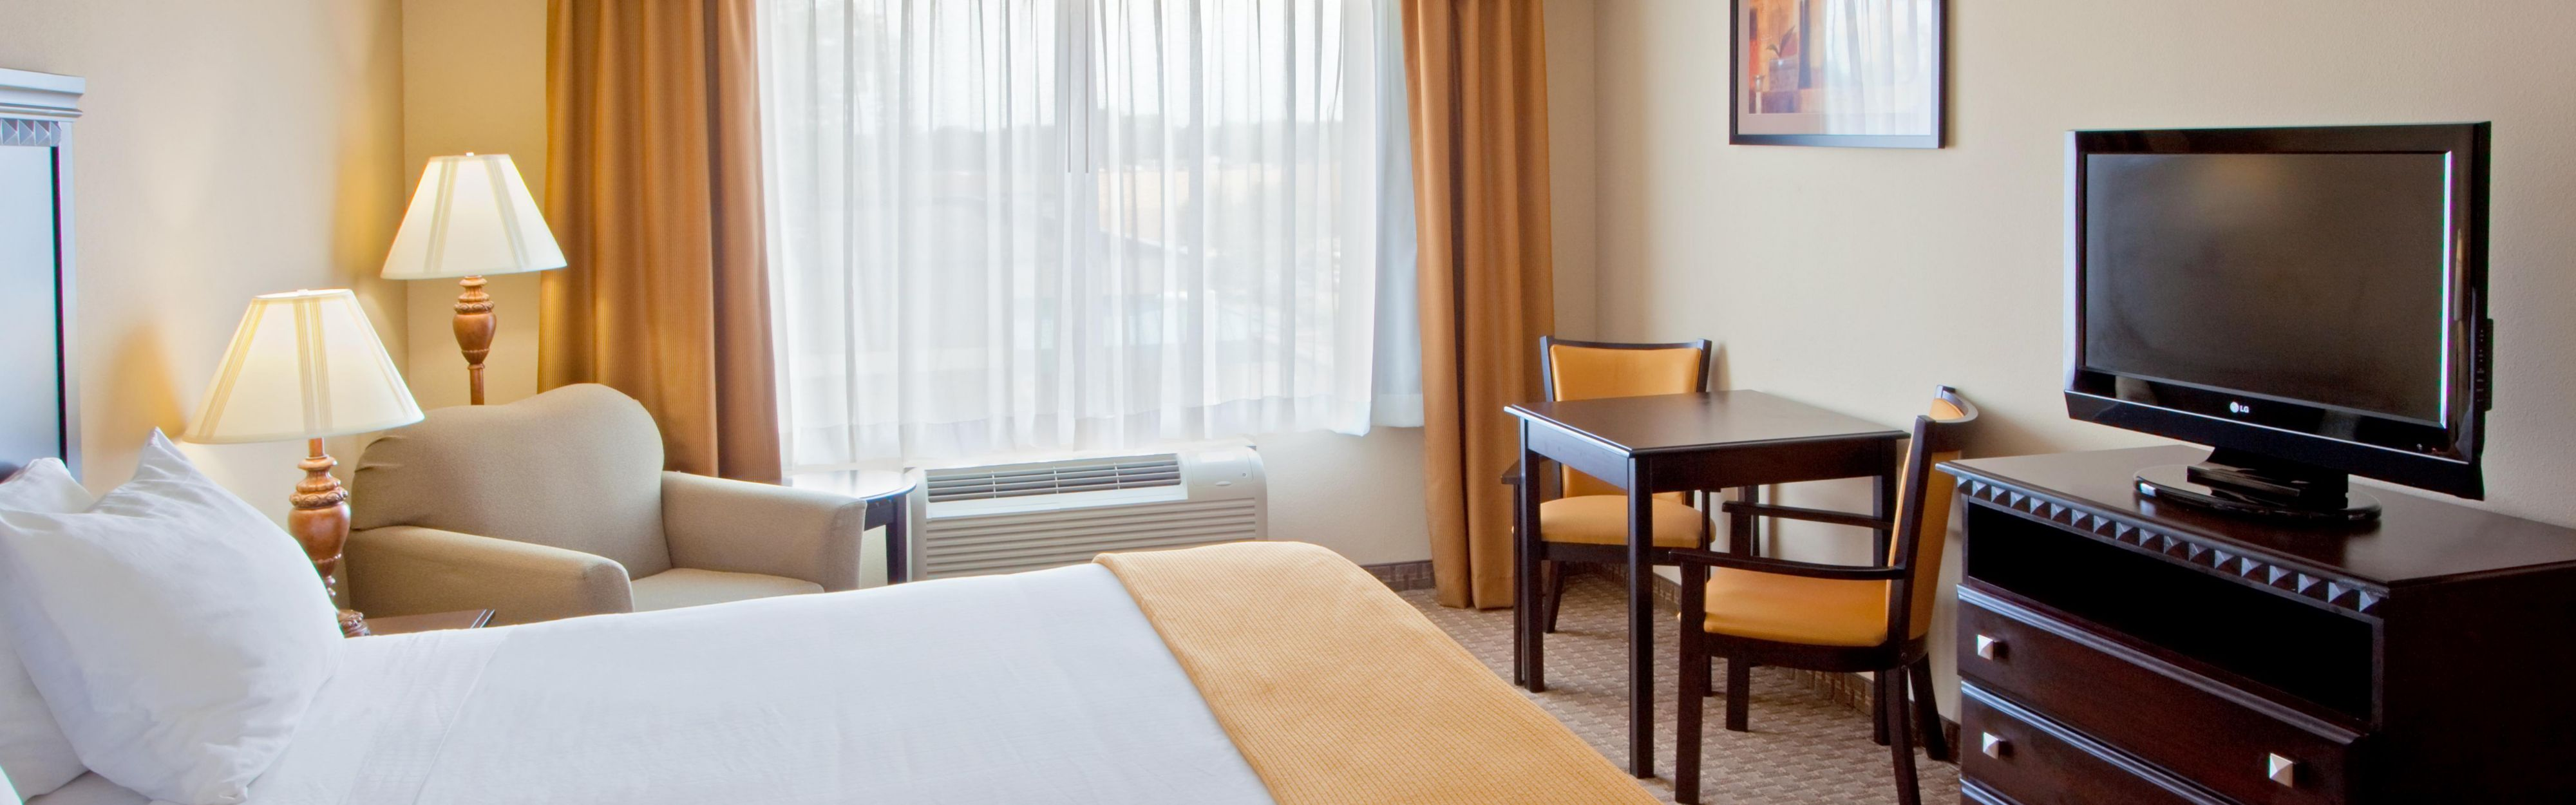 Holiday Inn Express & Suites Tappahannock image 1